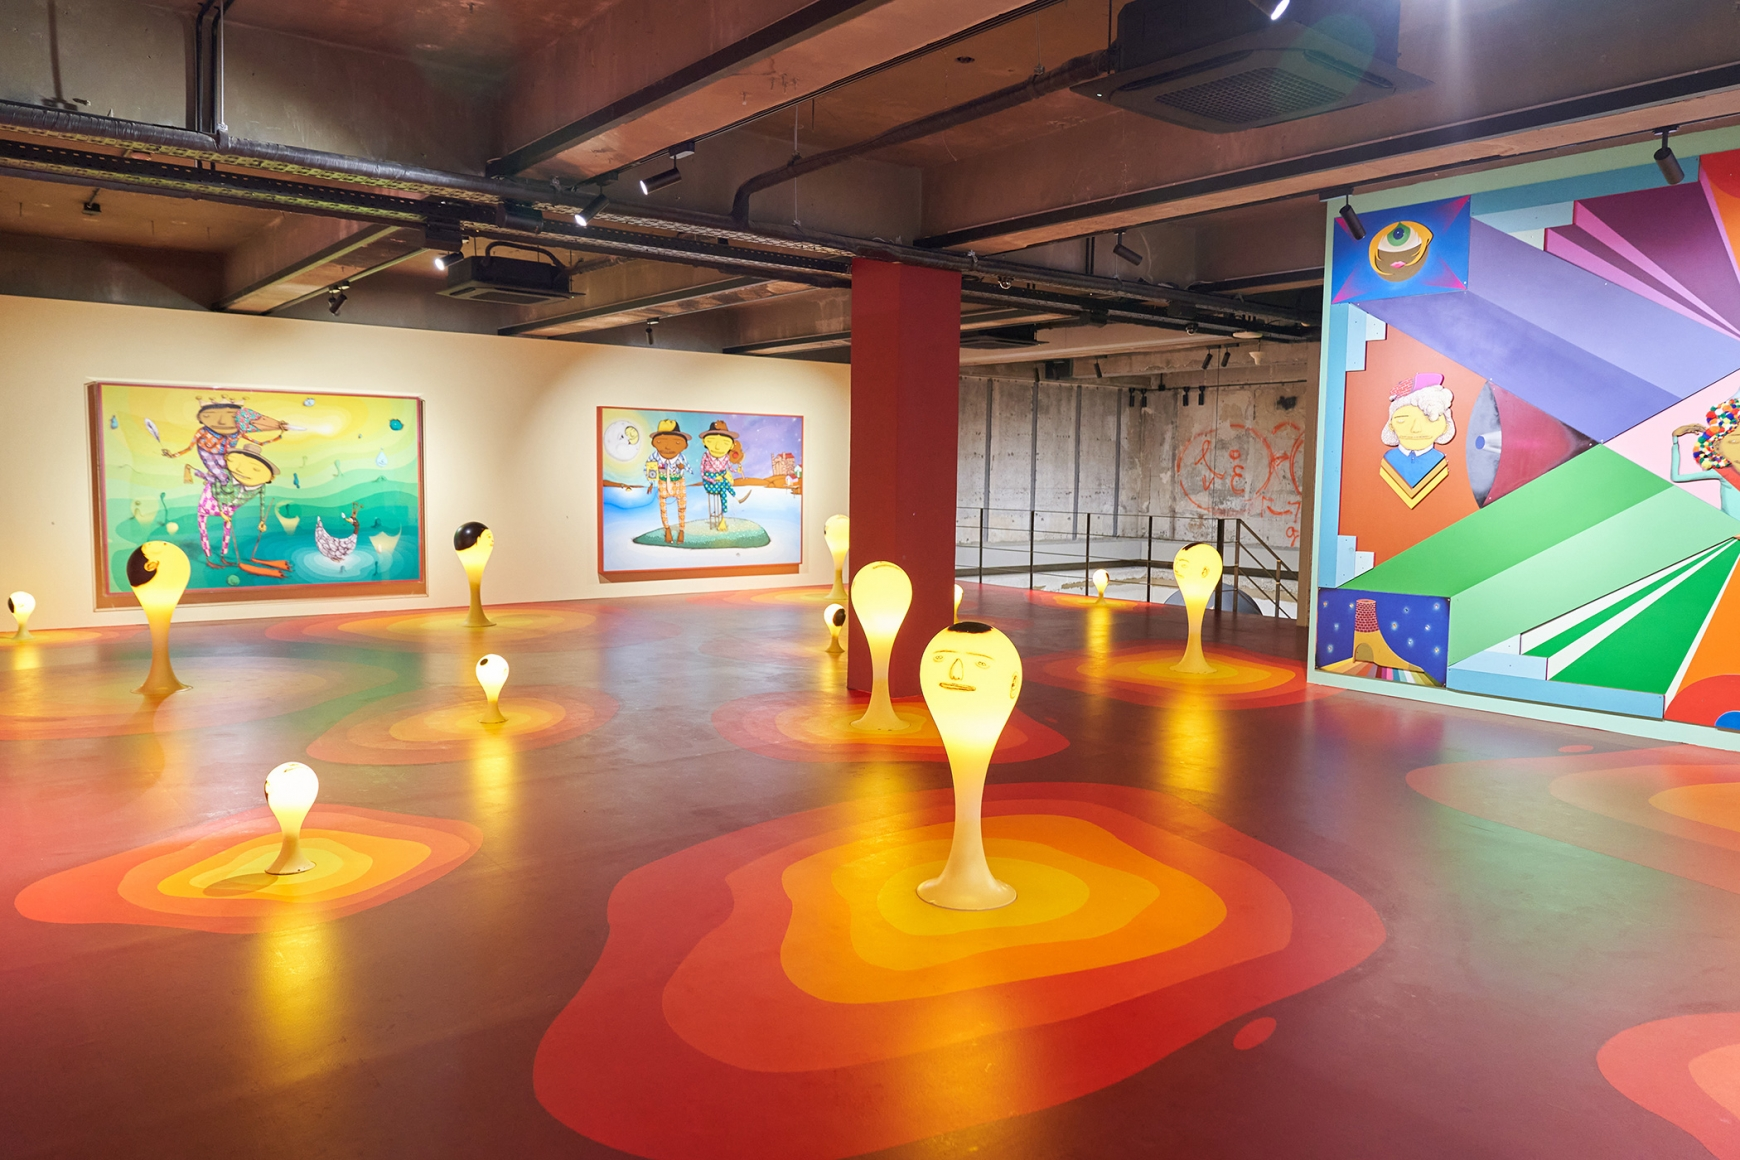 First installation view of the exhibition OSGEMEOS: You Are My Guest in Seoul